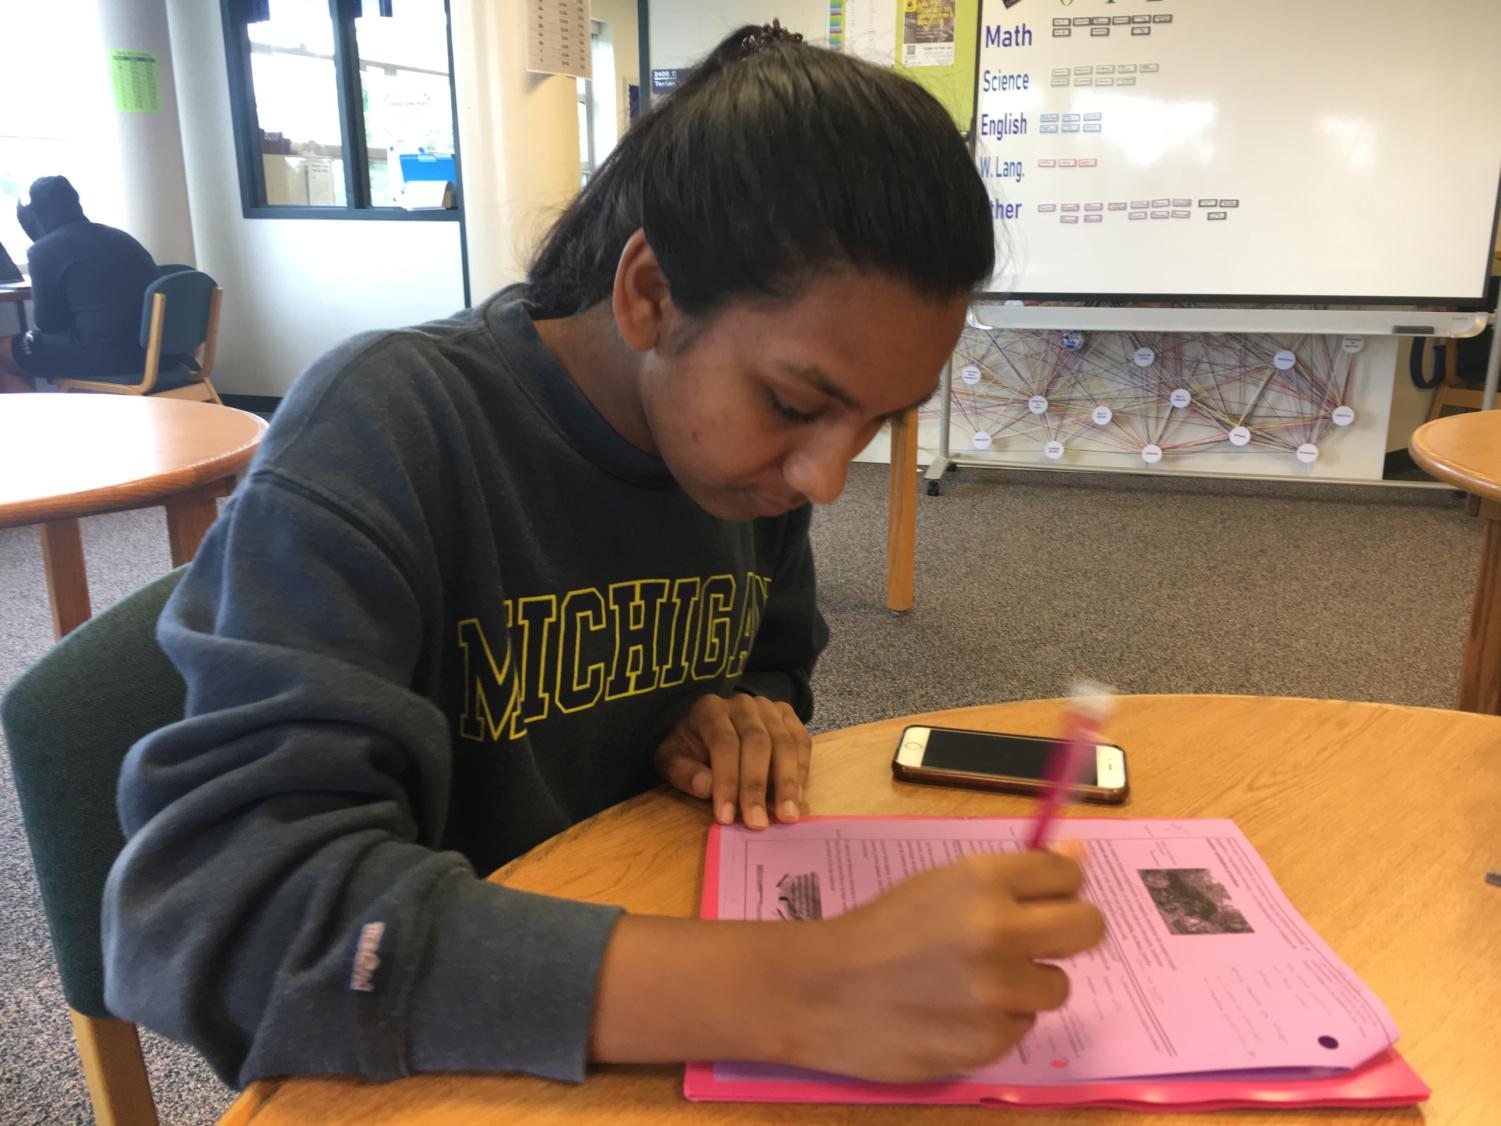 Mira Singh (11) diligently works on homework for a social studies class.